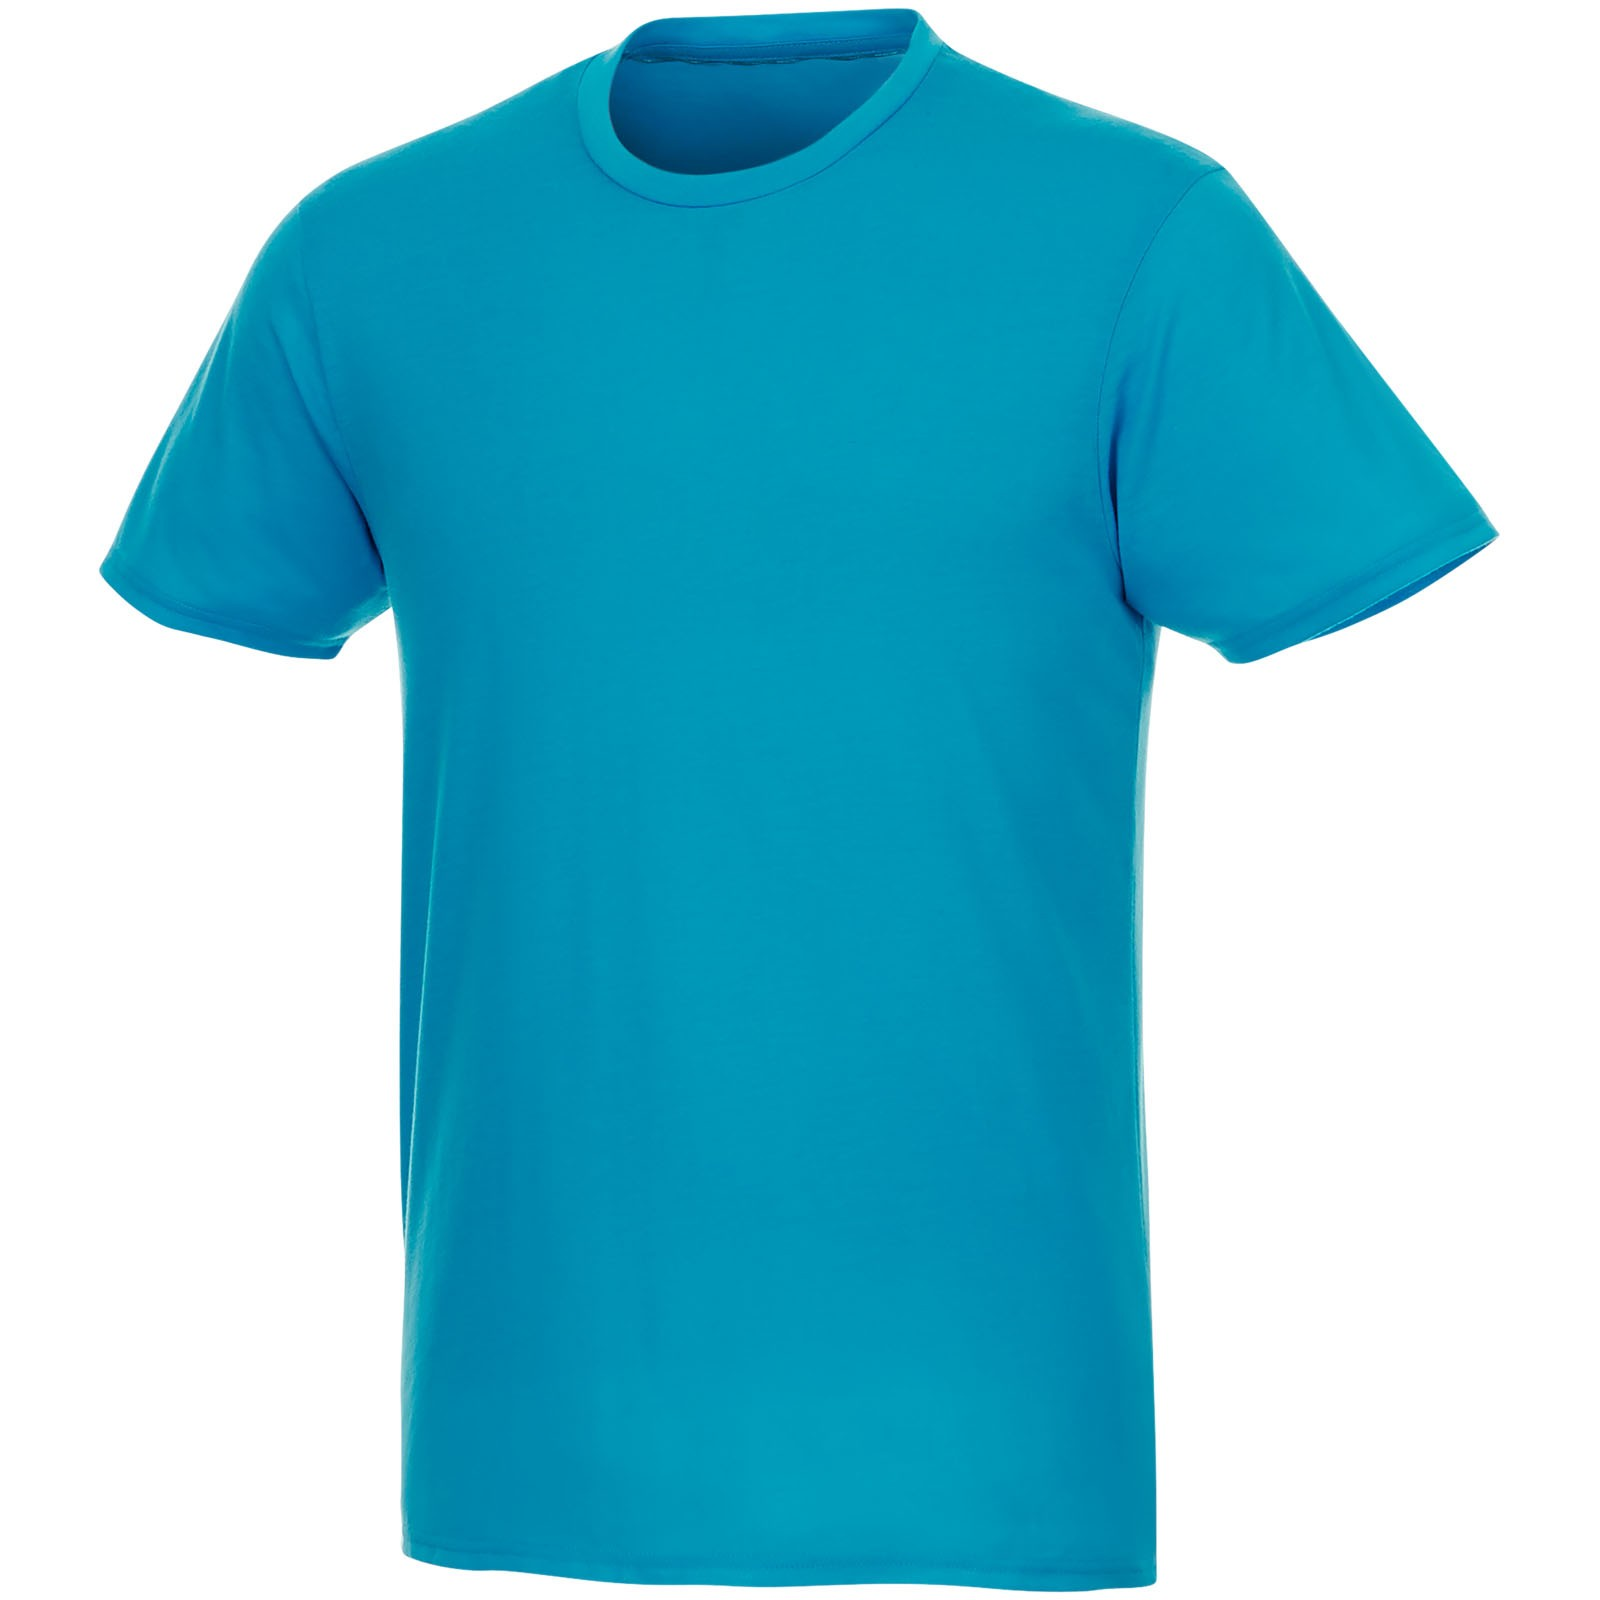 Jade short sleeve men's GRS recycled T-shirt - Nxt Blue / XL